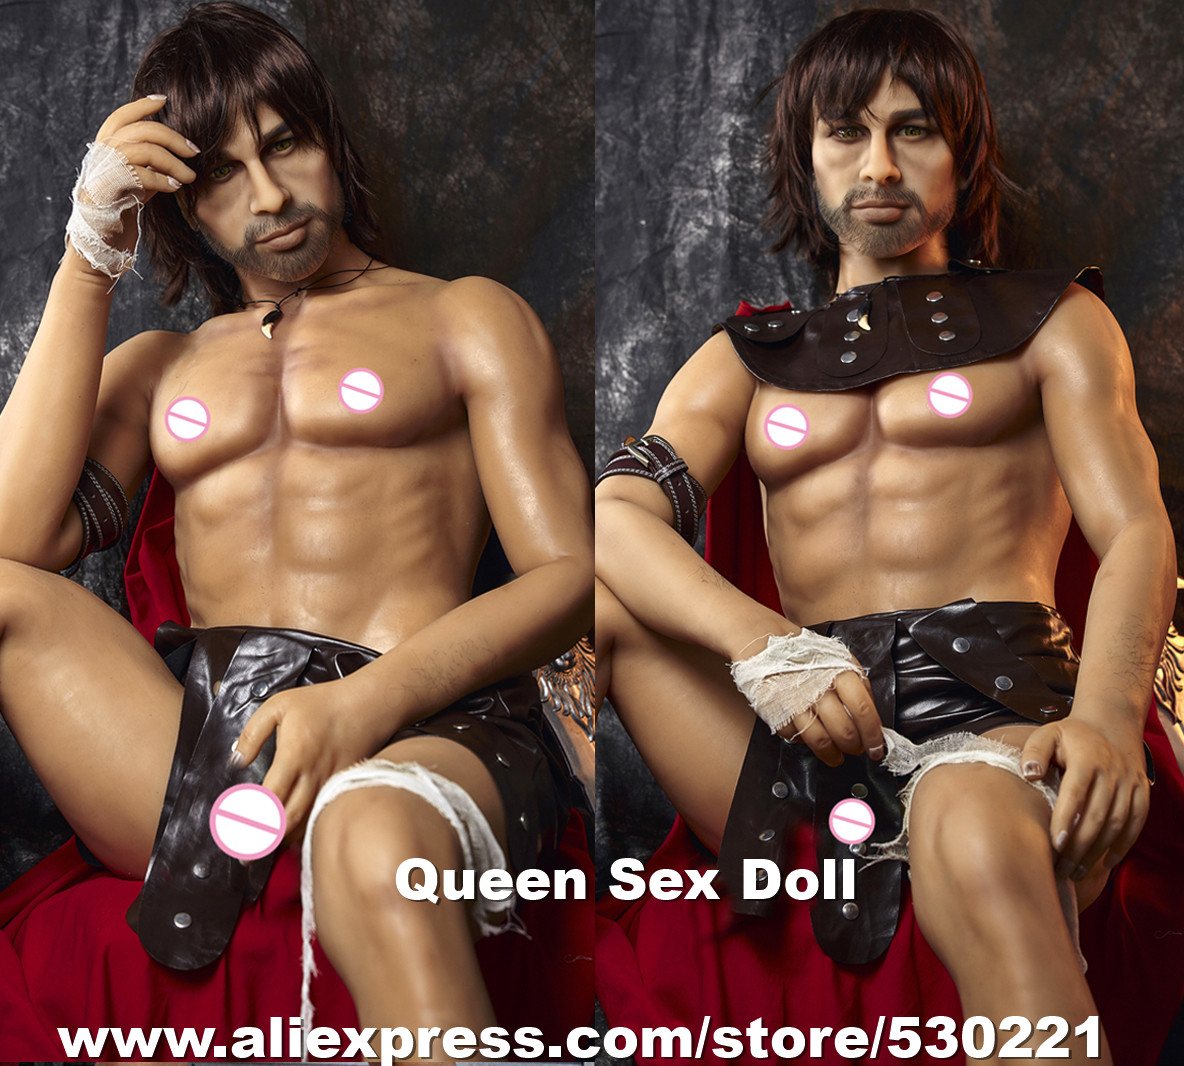 NEW 162cm Gay Male Sexy <font><b>Doll</b></font> Real <font><b>Silicone</b></font> Male <font><b>Sex</b></font> <font><b>Dolls</b></font> For Men And Women Big Penis Adult <font><b>Doll</b></font> <font><b>Dildo</b></font> image